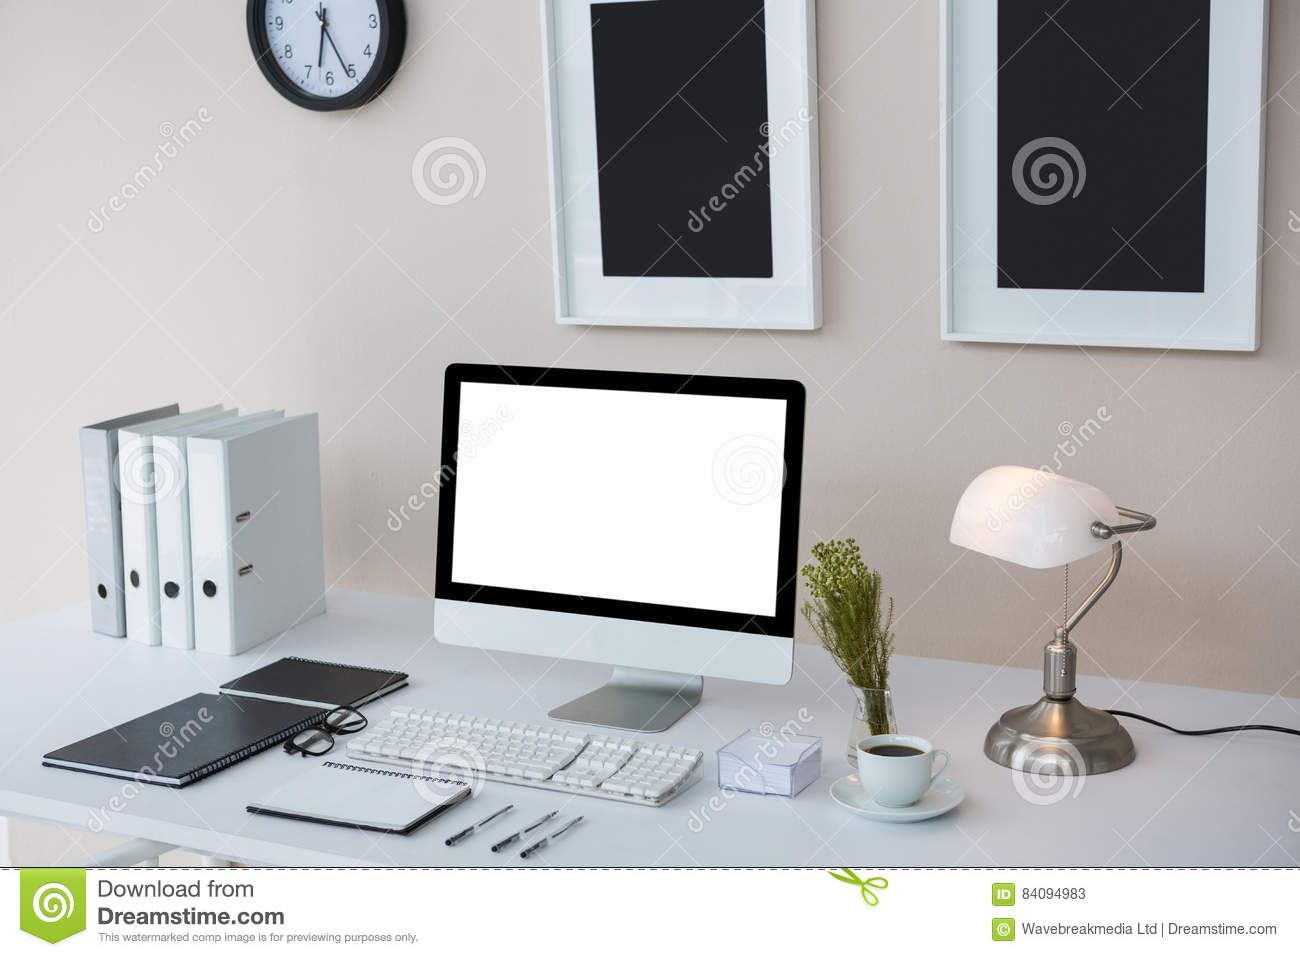 Desktop Pc On Desk With Picture Frames On Wall Stock Image Image